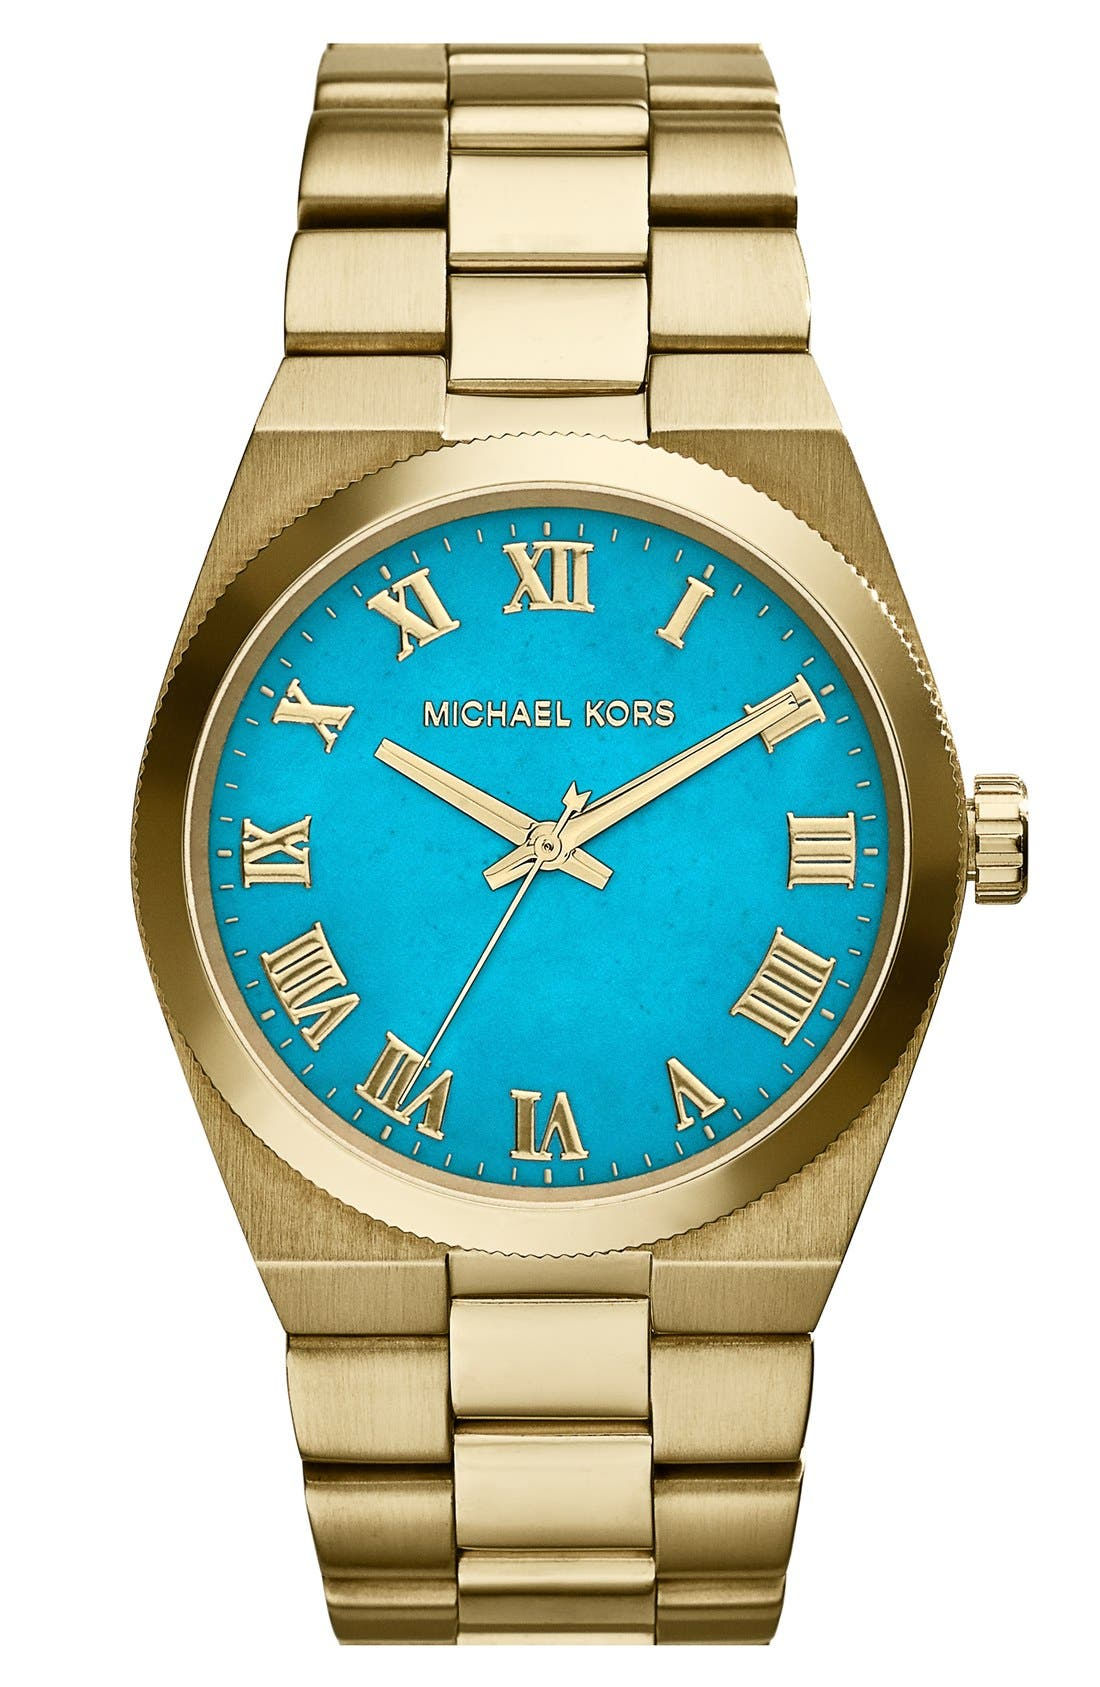 Main Image - Michael Kors 'Channing' Turquoise Dial Bracelet Watch, 38mm